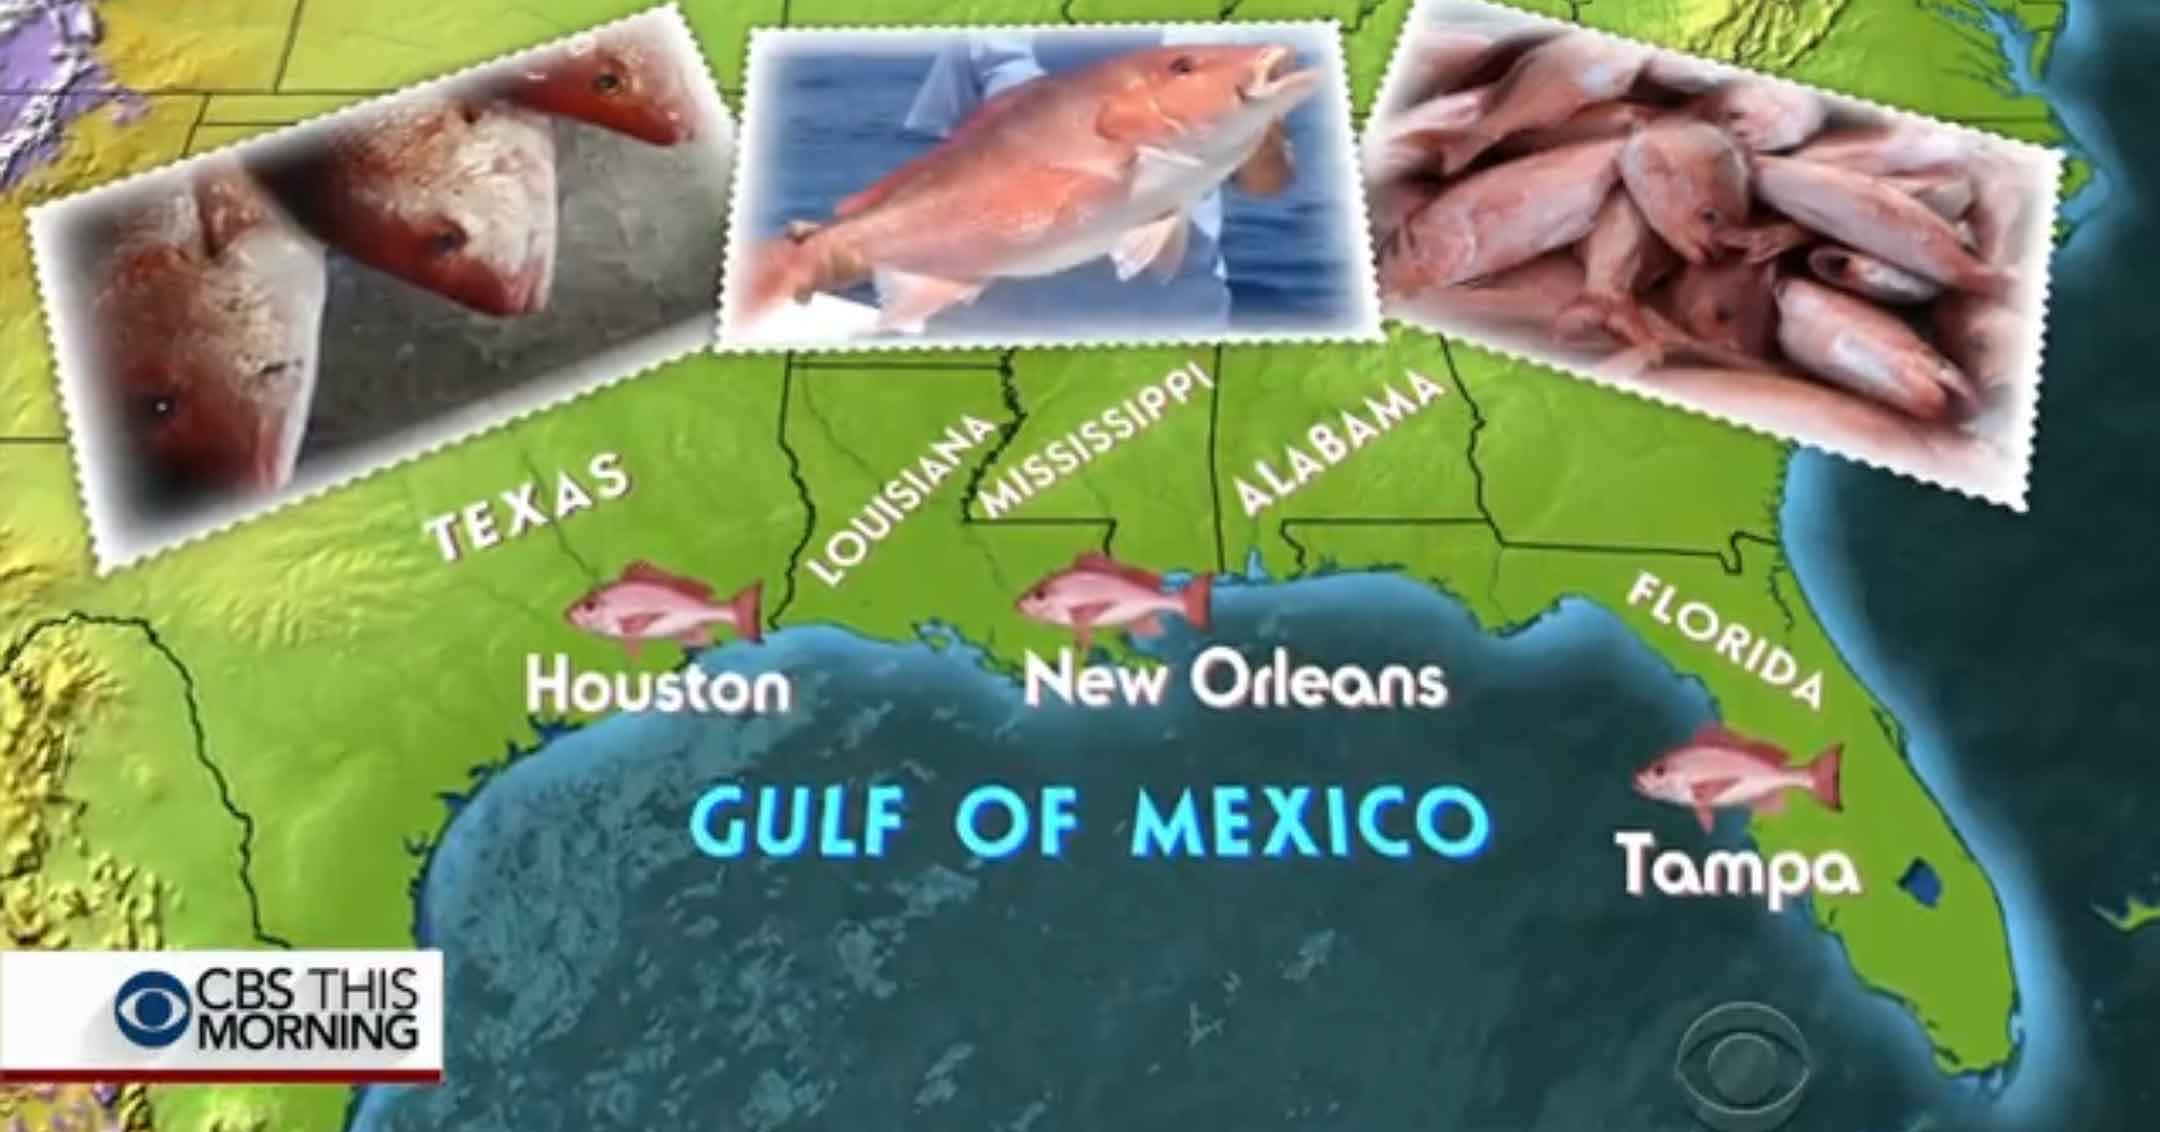 CBS This Morning feature | Ariel Seafoods